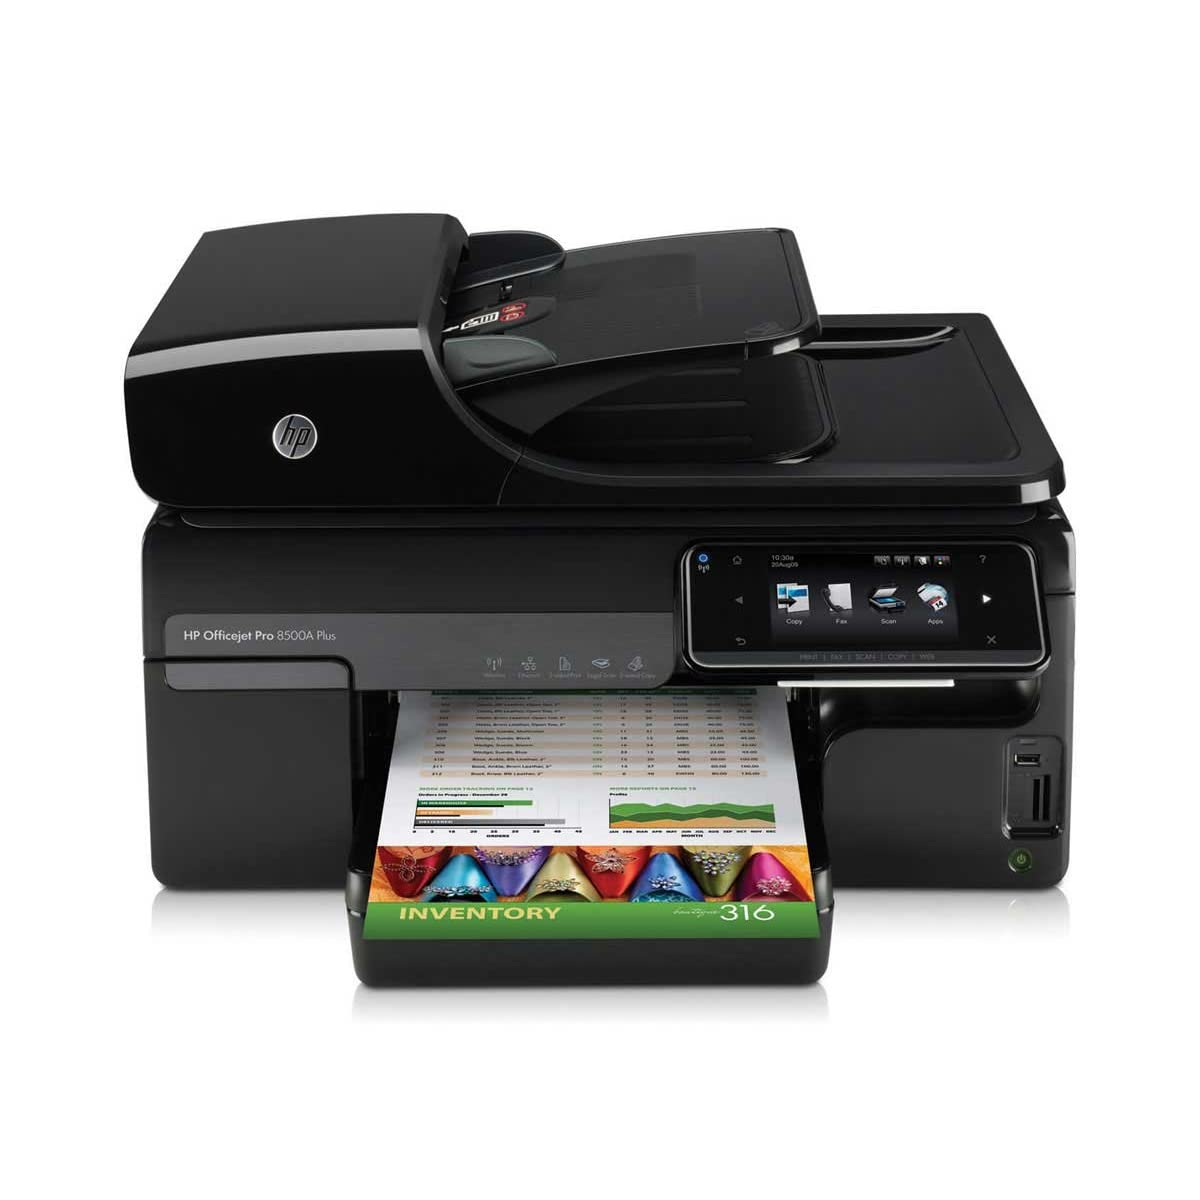 HP Officejet Pro 8500A Plus Wireless e-All-in-One